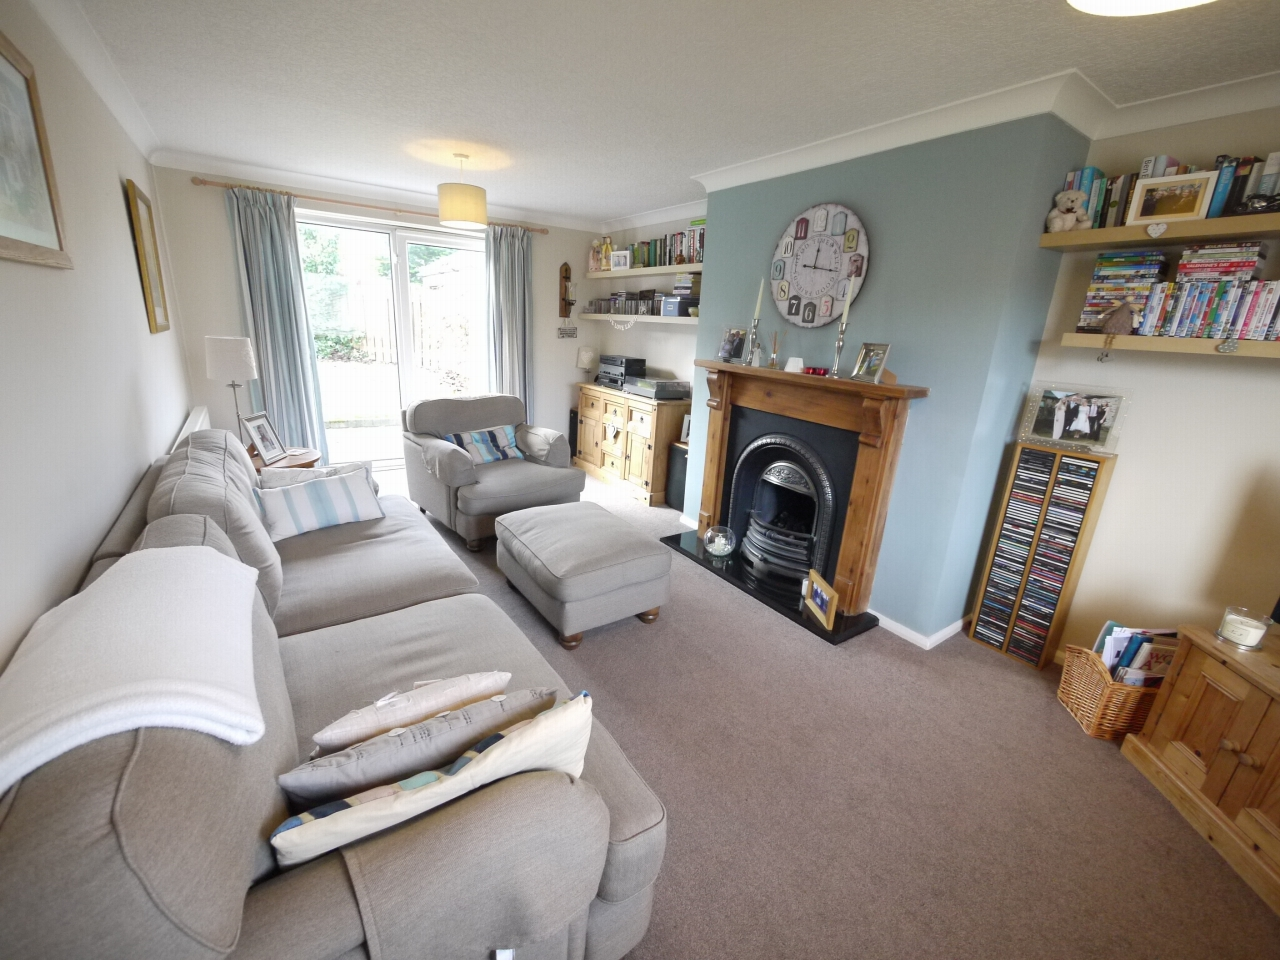 4 bedroom detached house For Sale in Brighouse - Photograph 2.